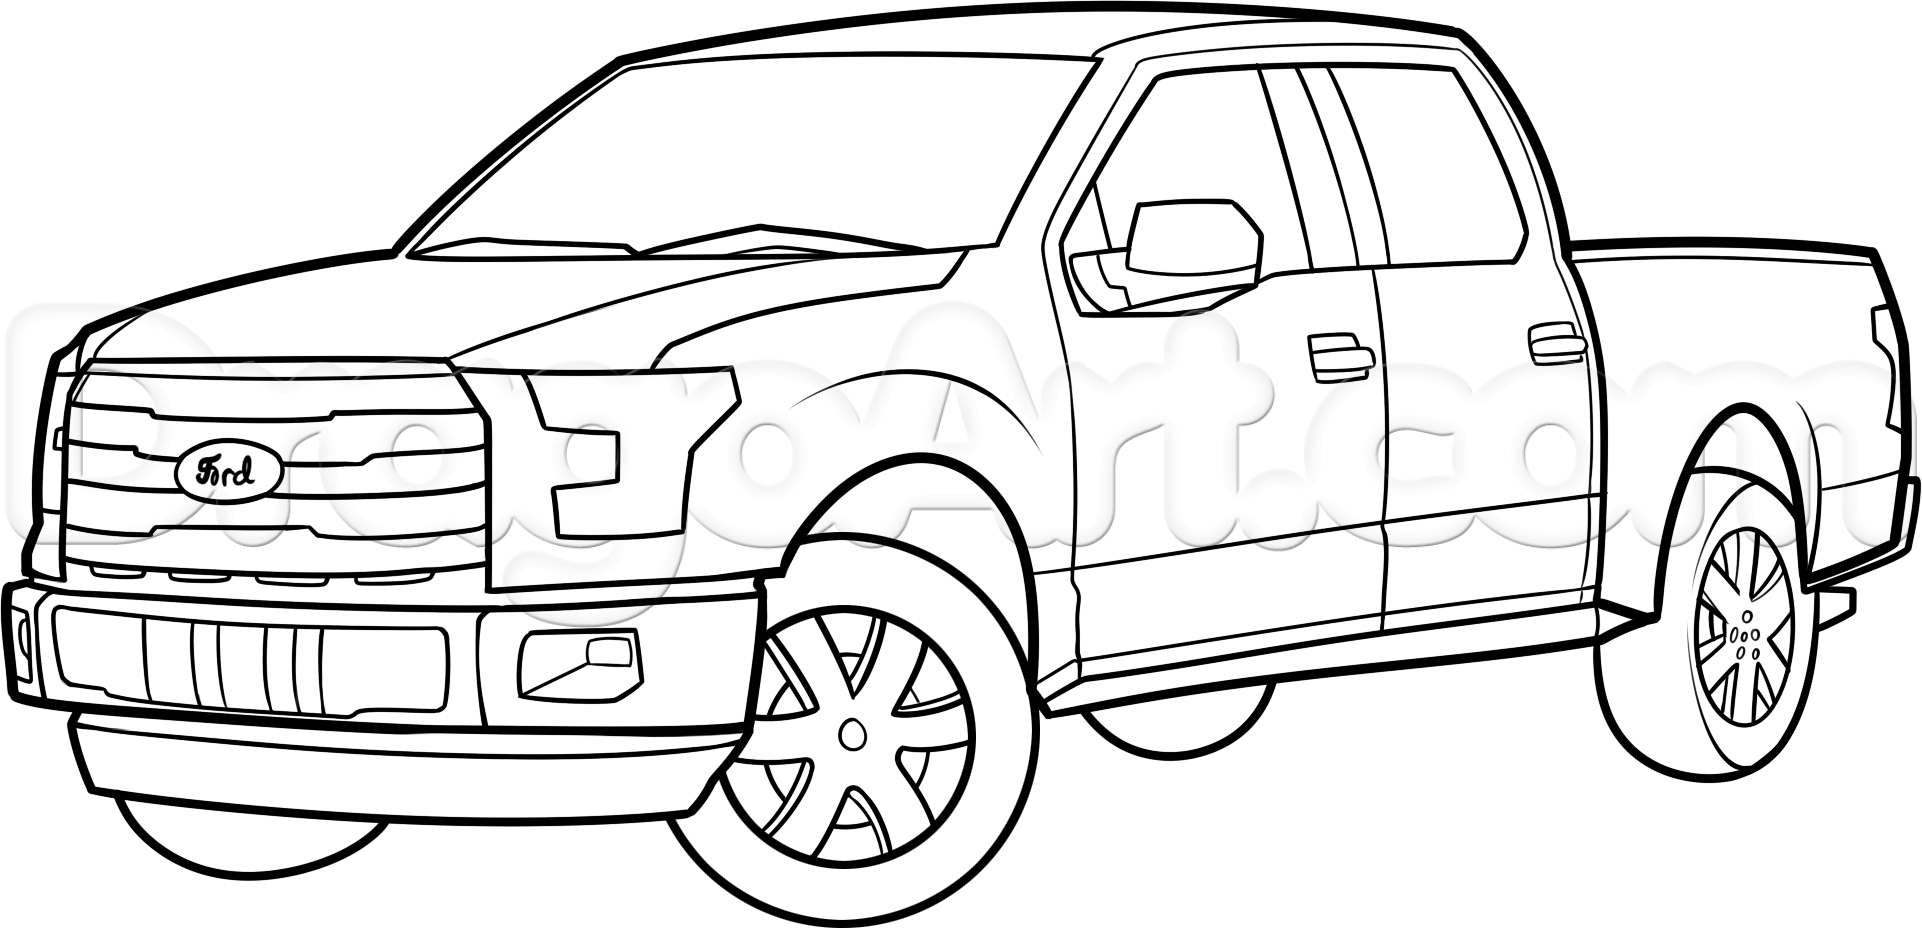 printable coloring pages trucks pickup truck coloring pages printable at getcoloringscom coloring printable trucks pages